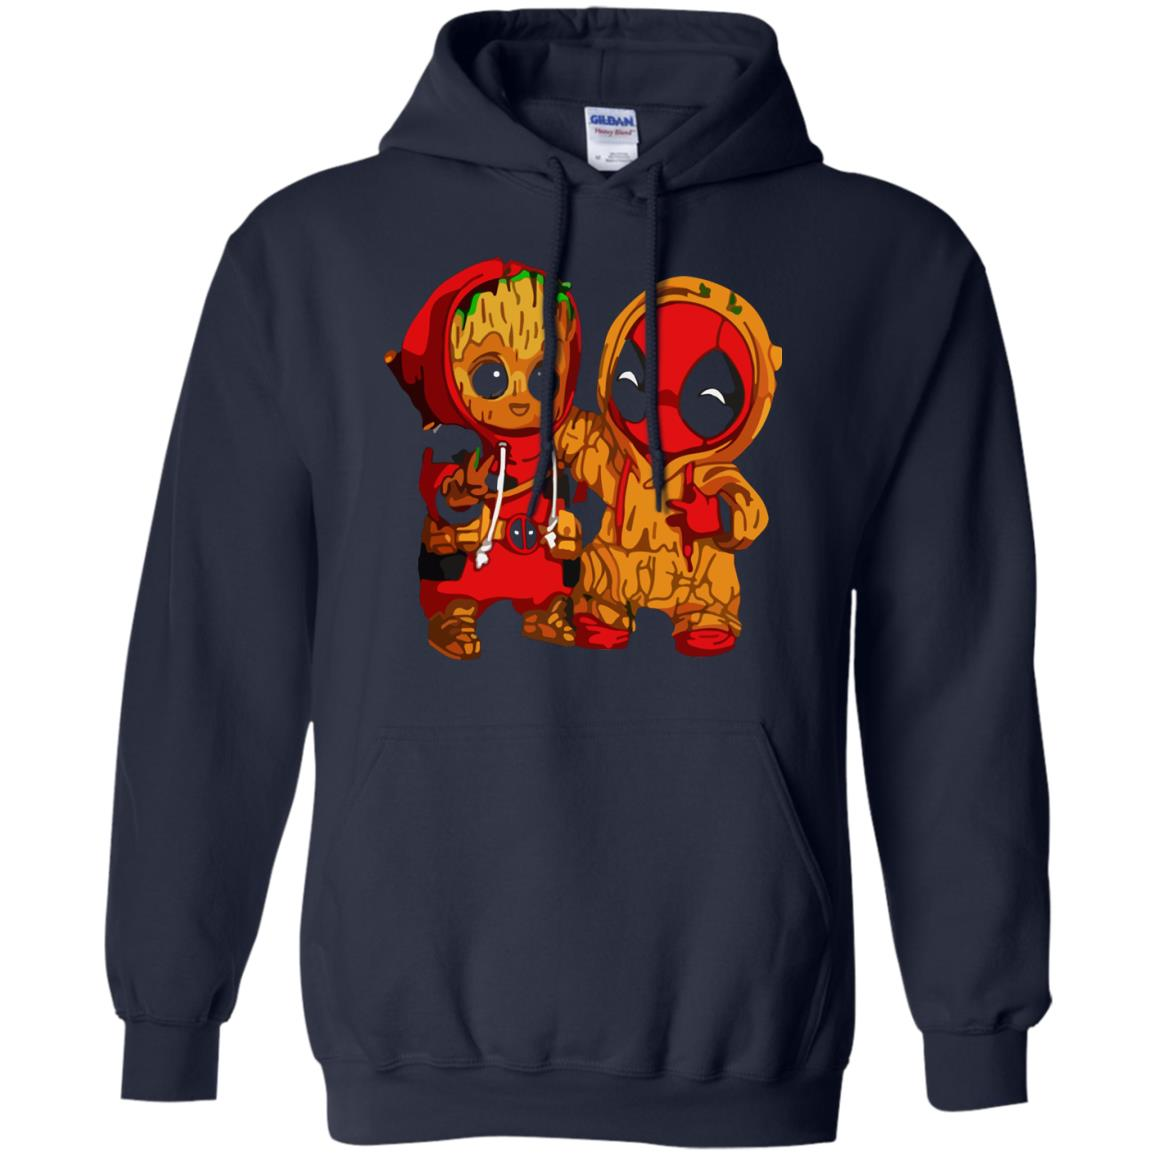 image 436 - Baby Groot And Deadpool Sweatshirt, Hoodie